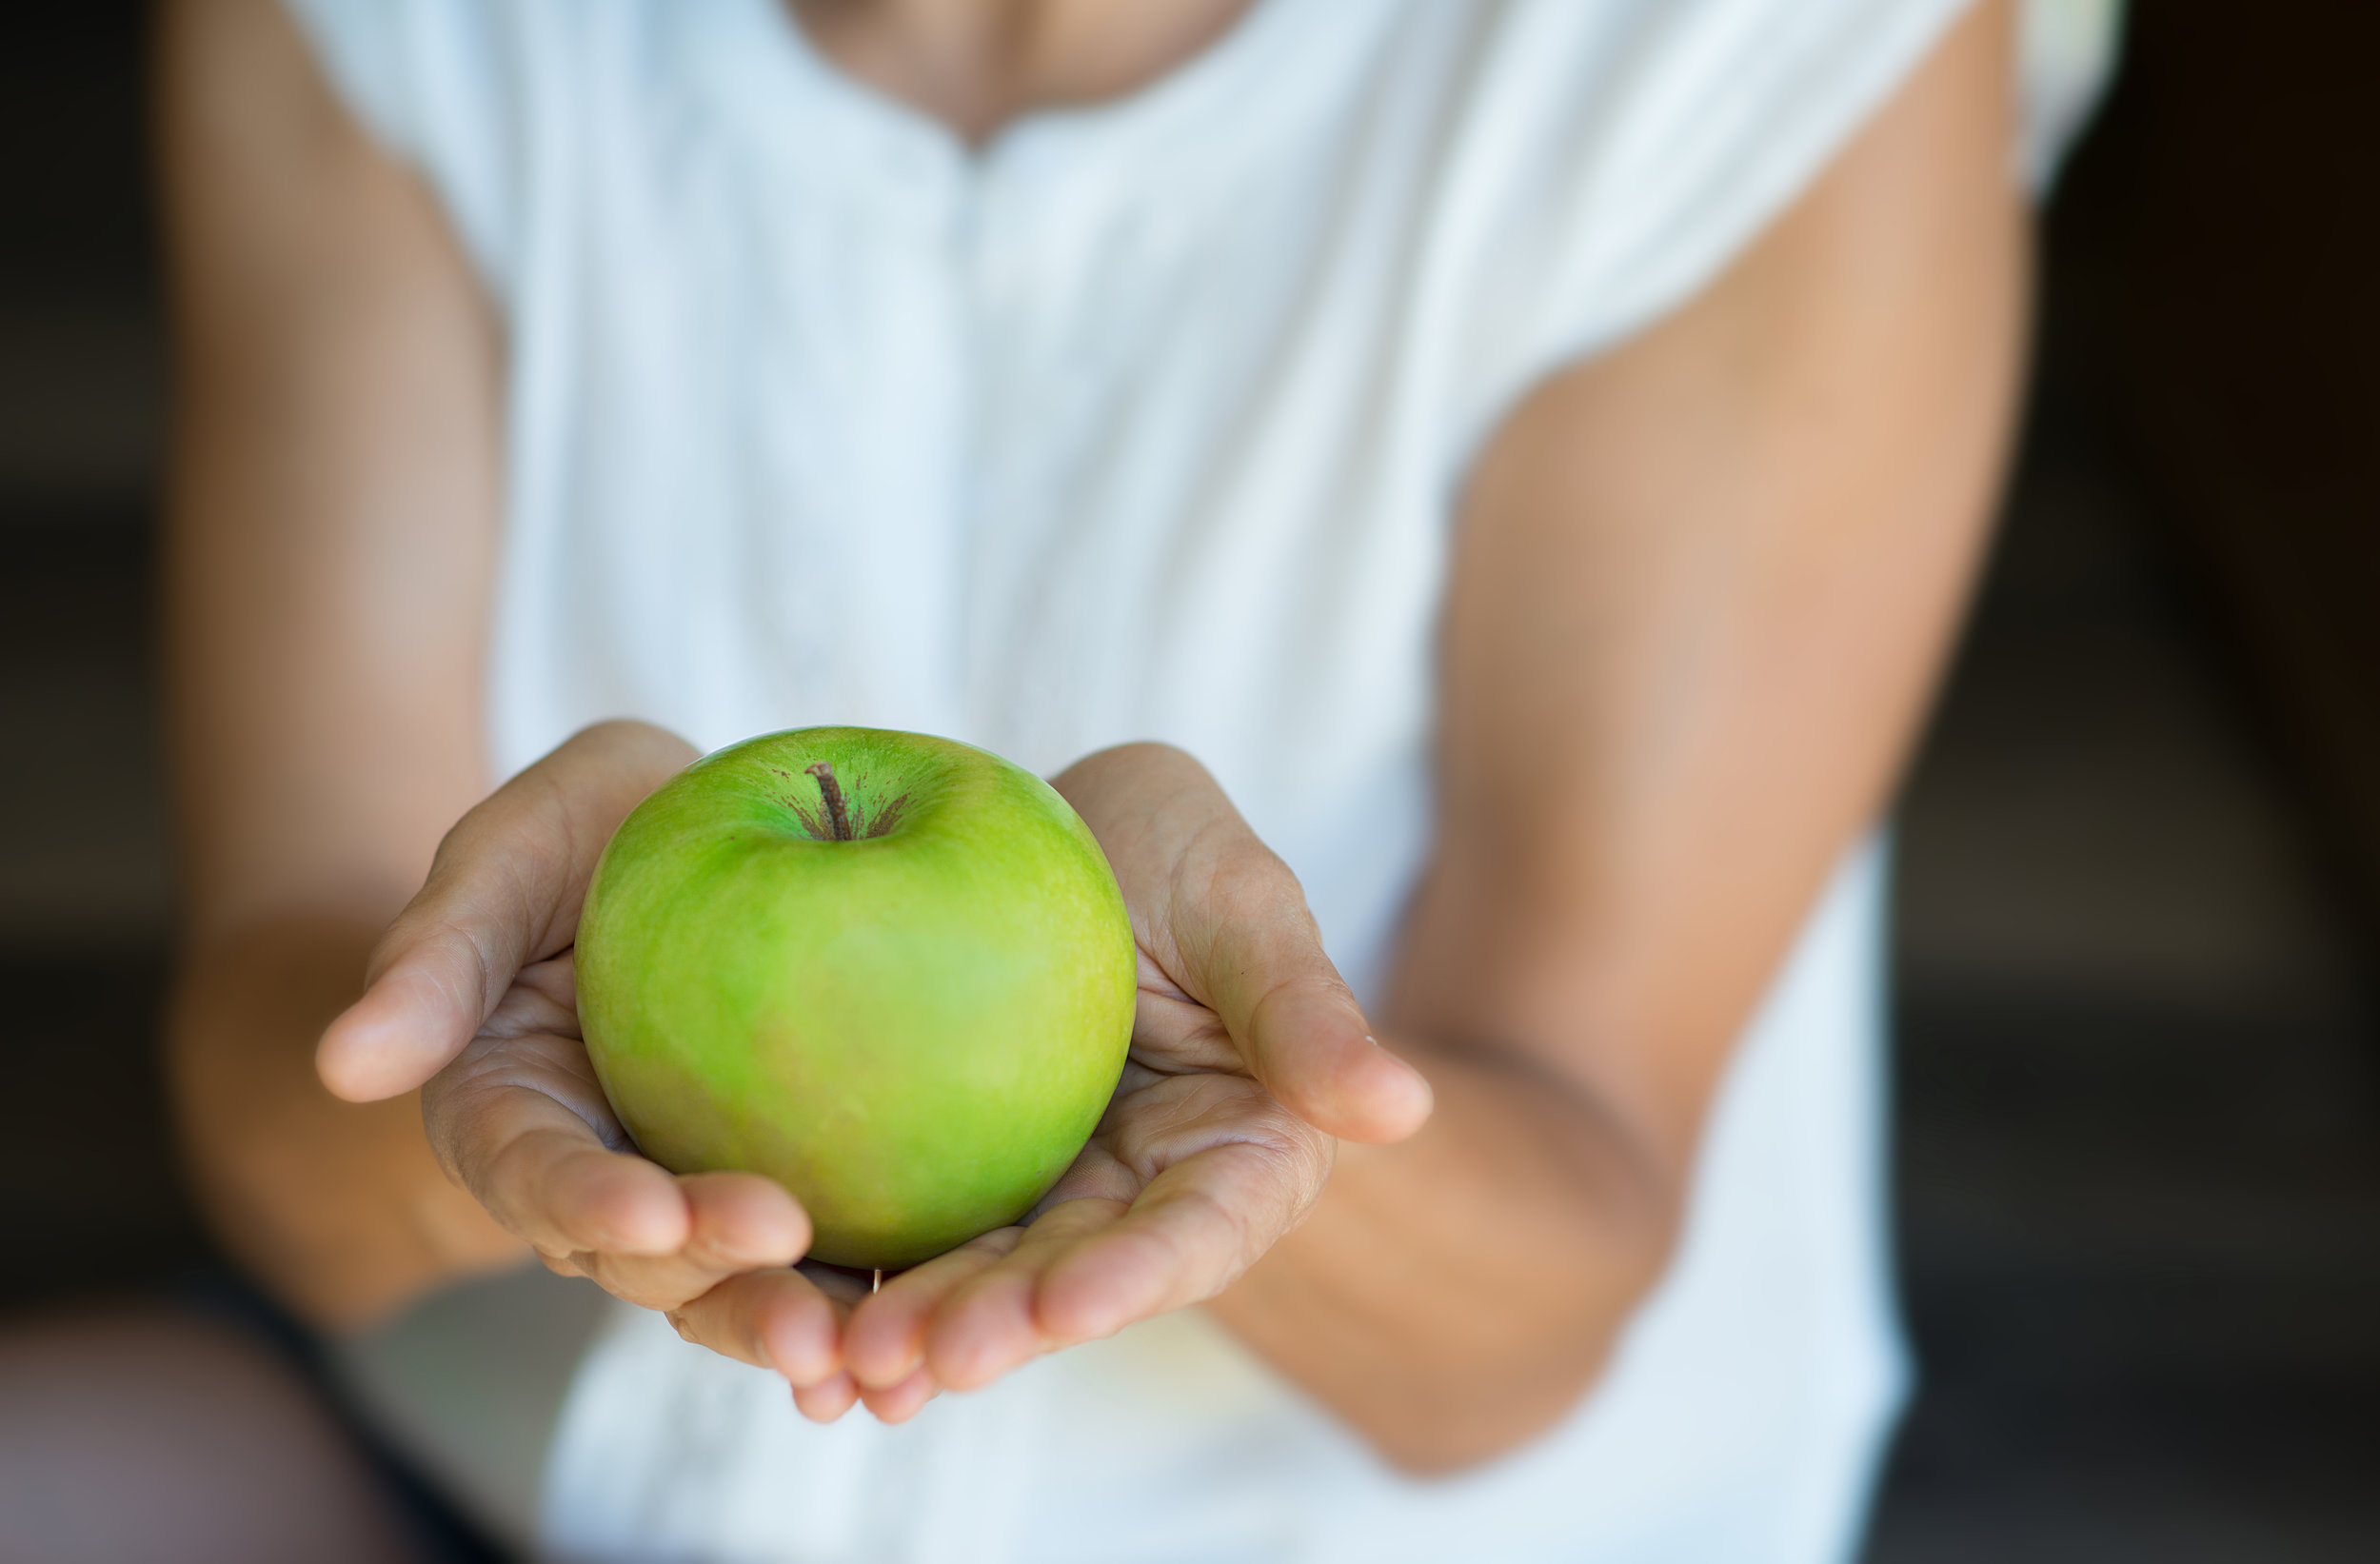 Nutrition  We are what we eat. Food can be a most powerful medicine. Healthy and balanced nutrition is the key to reaching optimal health. Nutrition and healthy eating habits are discussed in depth during treatments, regardless of the condition treated.